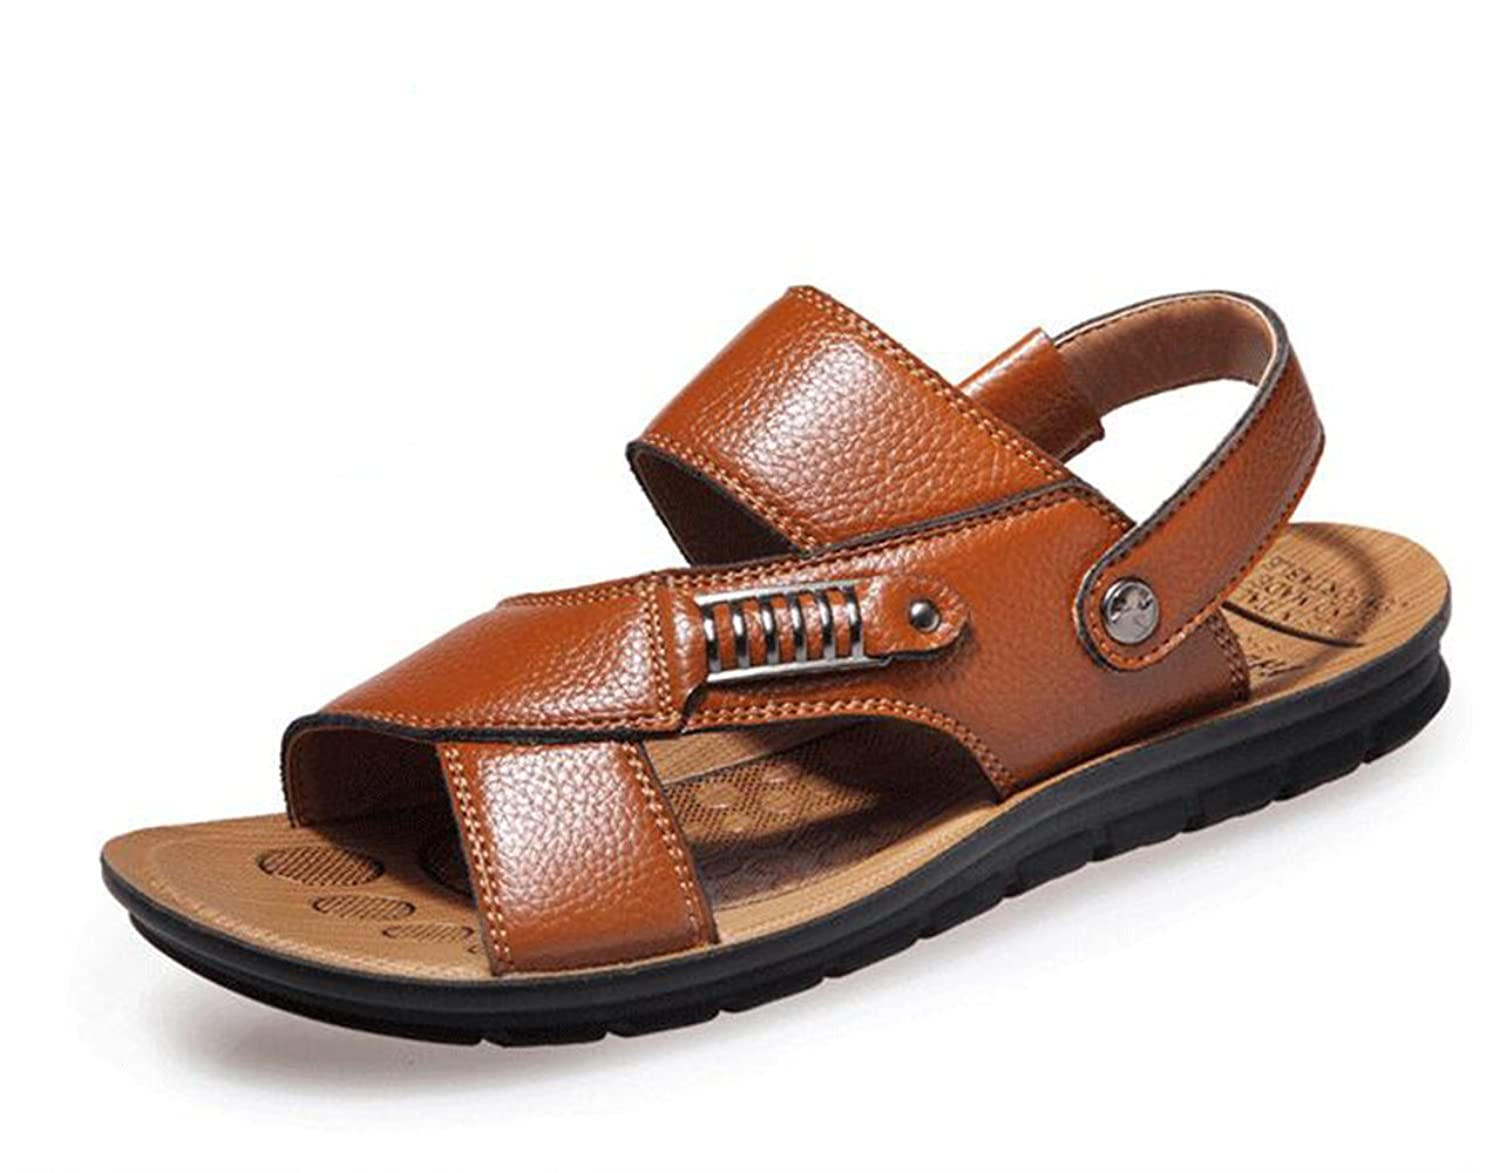 CANRO Men's Beach Shoes Leisure Pull on Sandals Leather Sandals - Khaki - 9  UK: Amazon.co.uk: Shoes & Bags